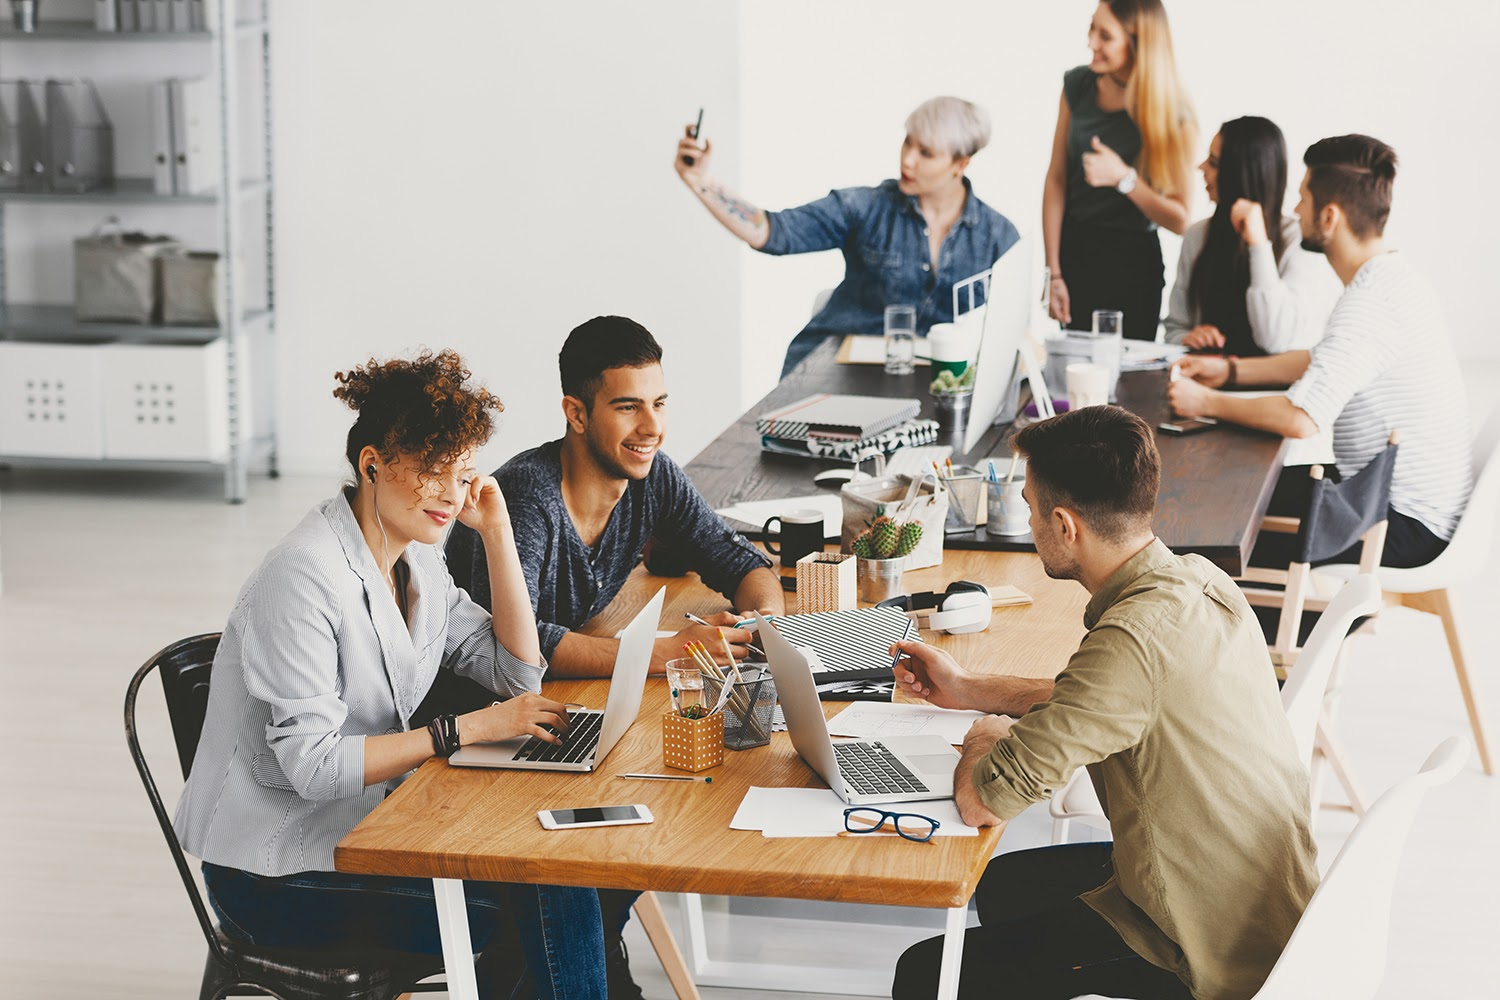 Why hire interns: Diverse group of young interns at two different office tables